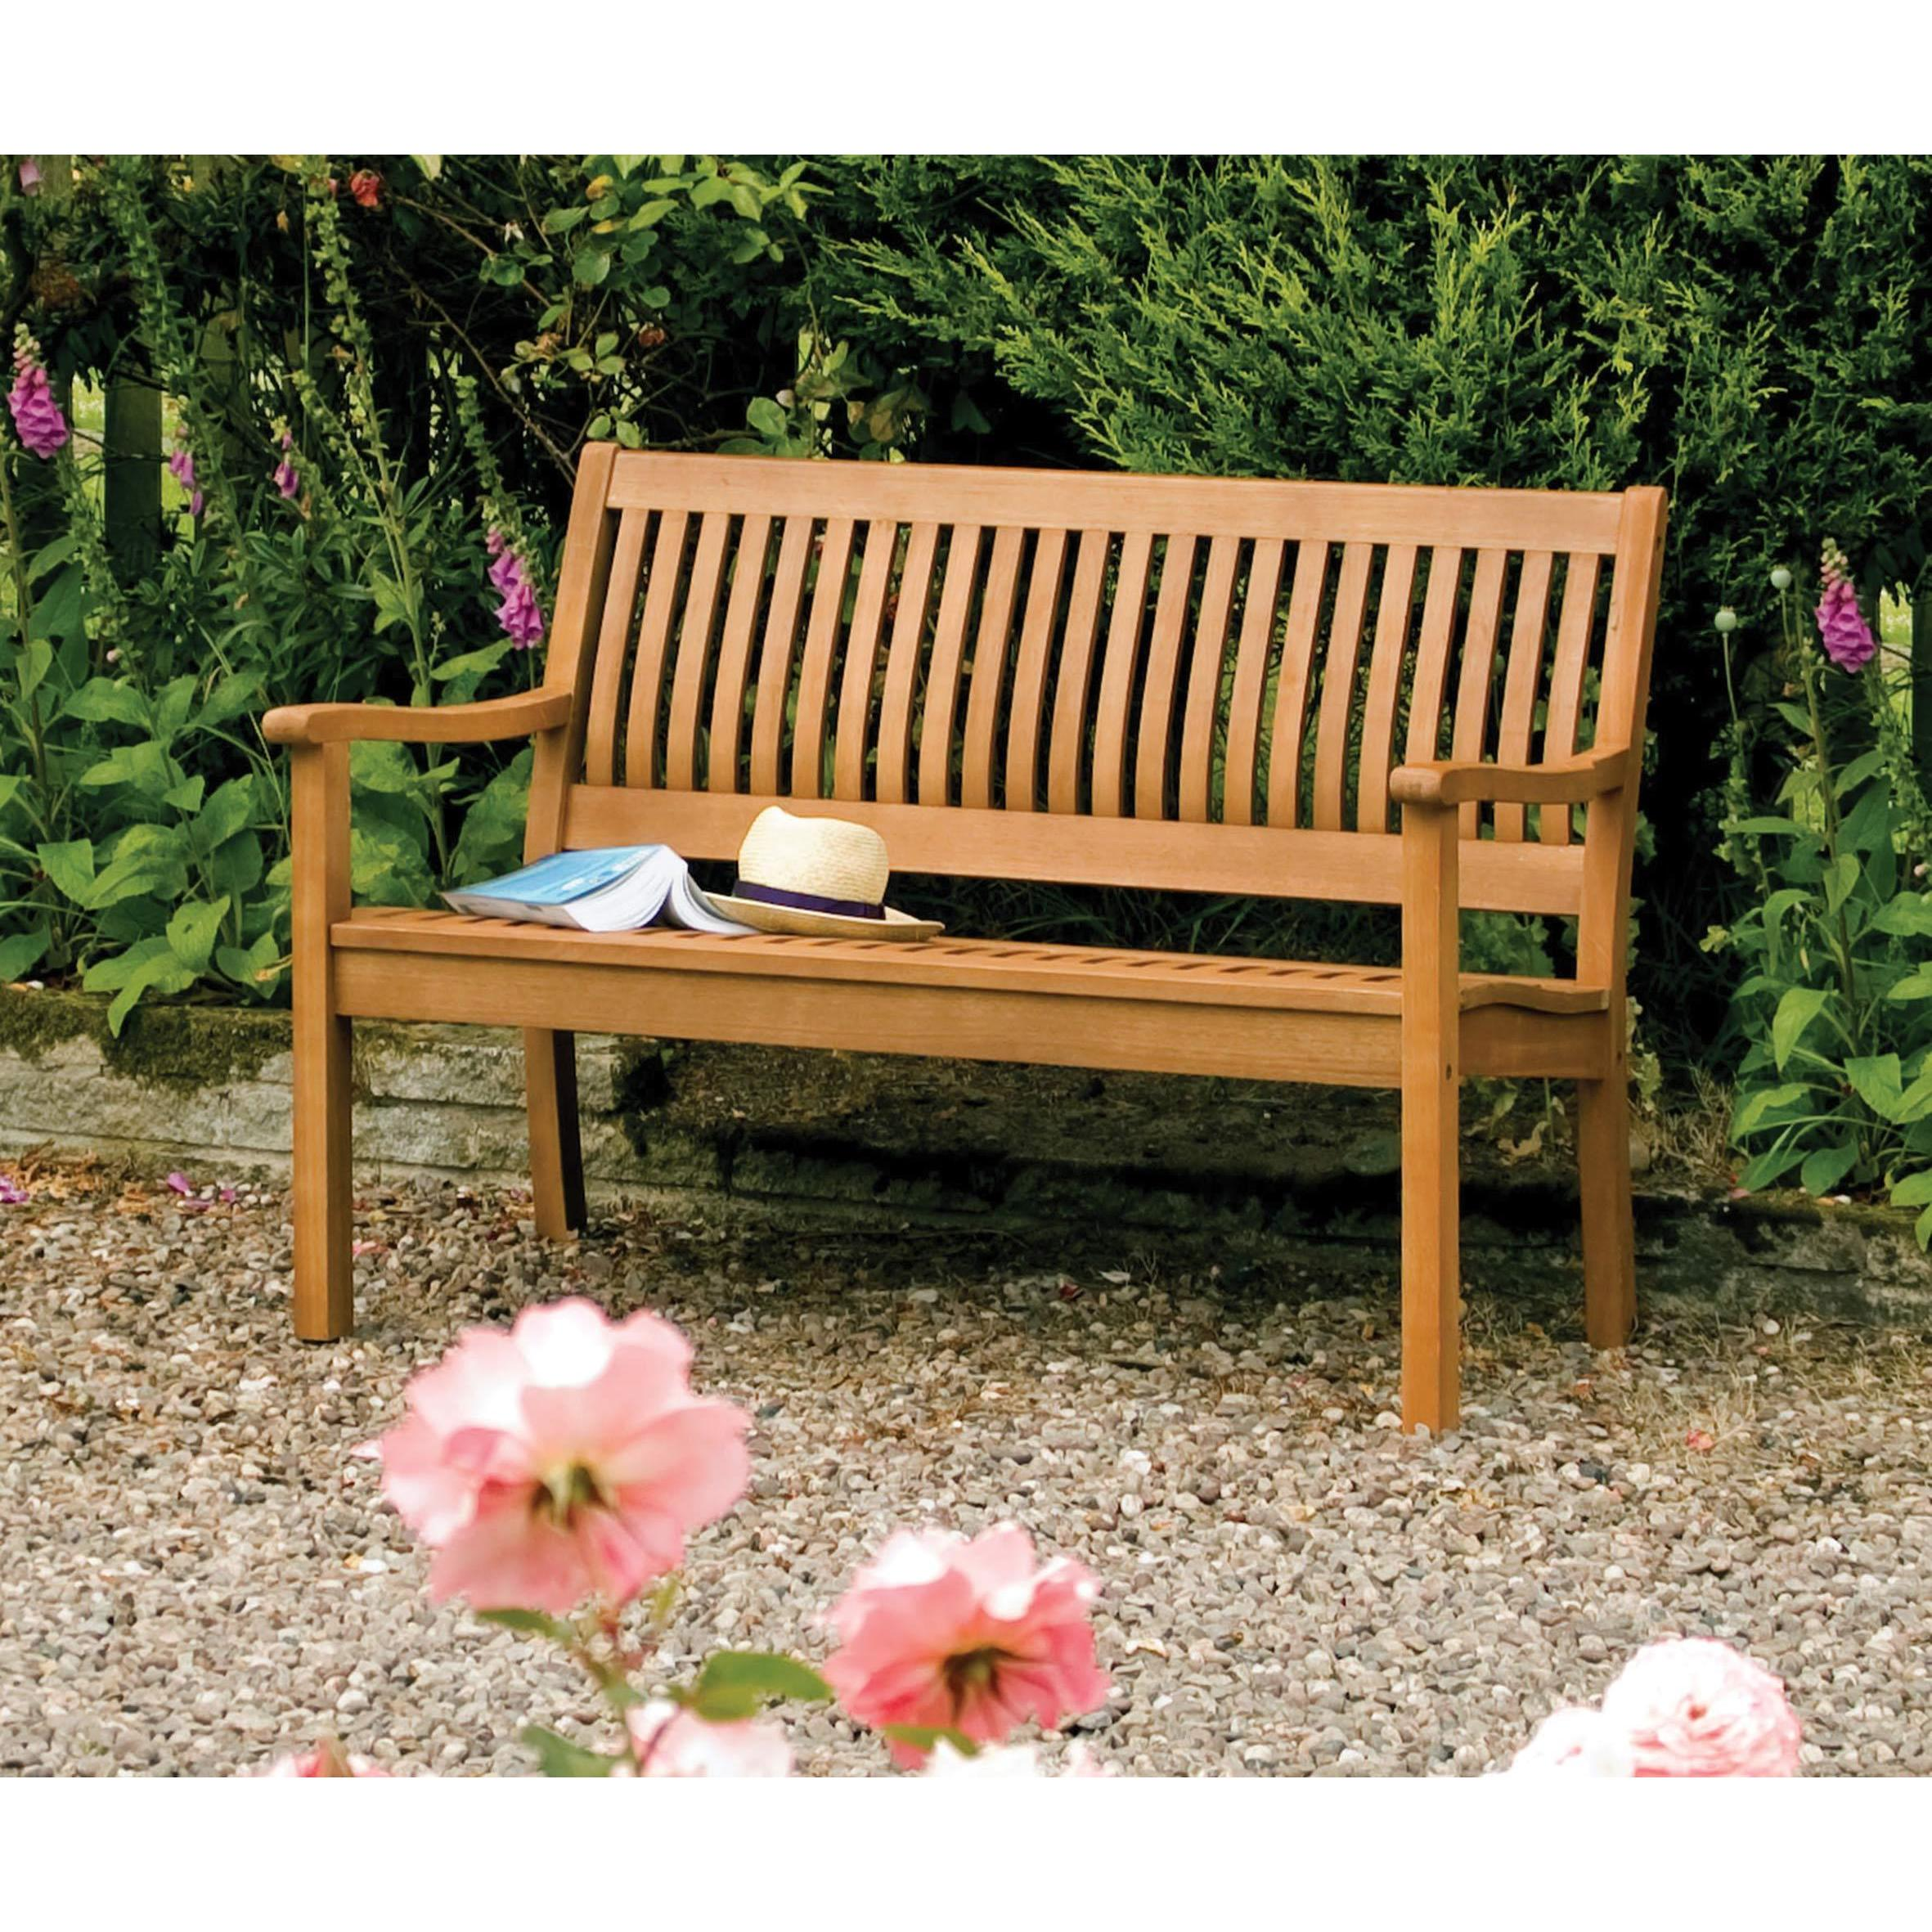 Shop English Garden 48 Inch Wooden Bench Overstock 10118064